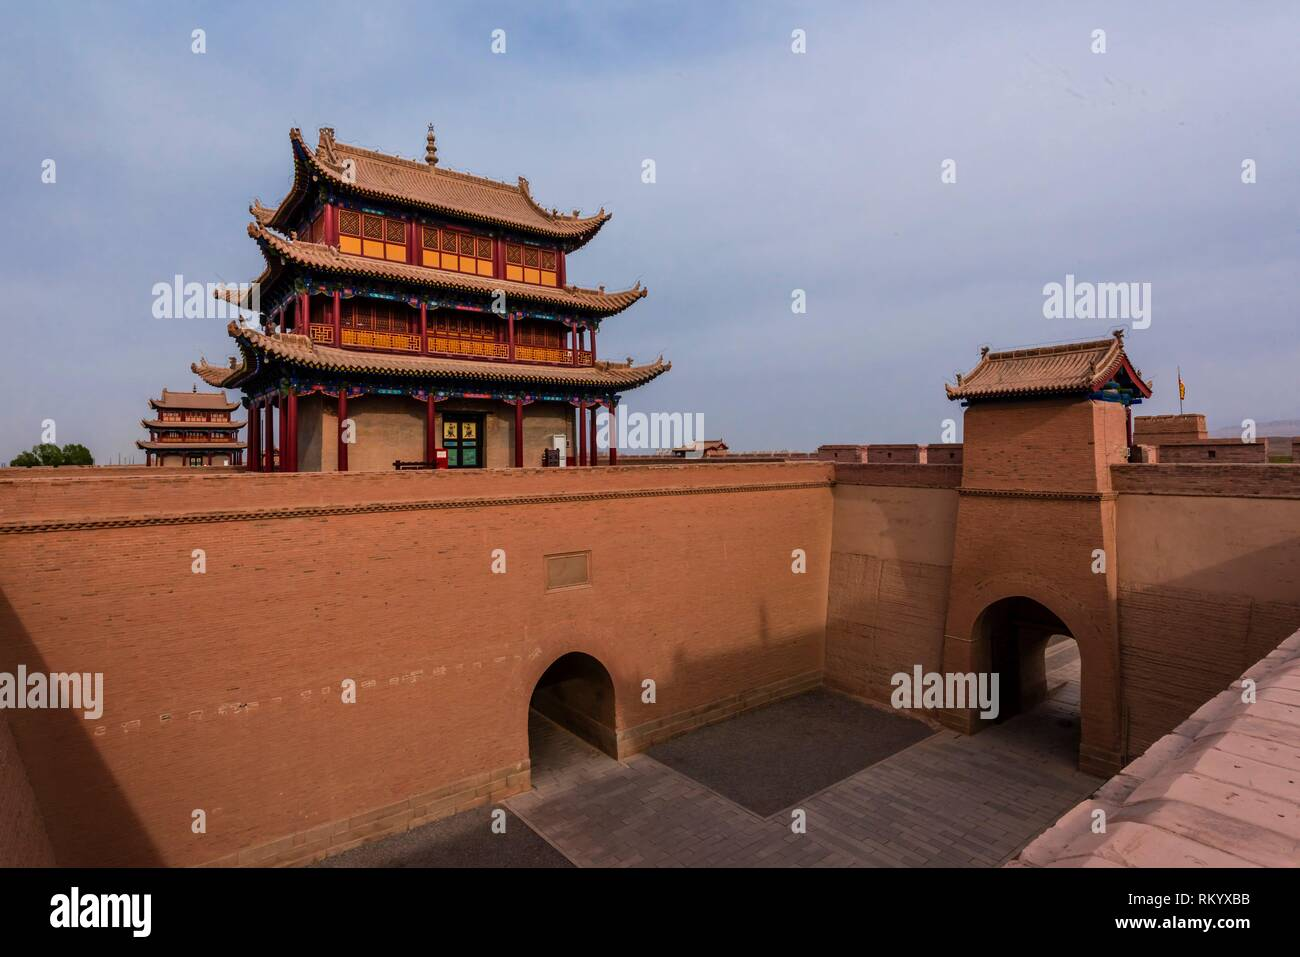 Rouyuan Tower (West Tower). Jiayuguan Fort is the western end of the Great Wall built in the Ming Dynasty (1368 - 1644). It was an important military - Stock Image